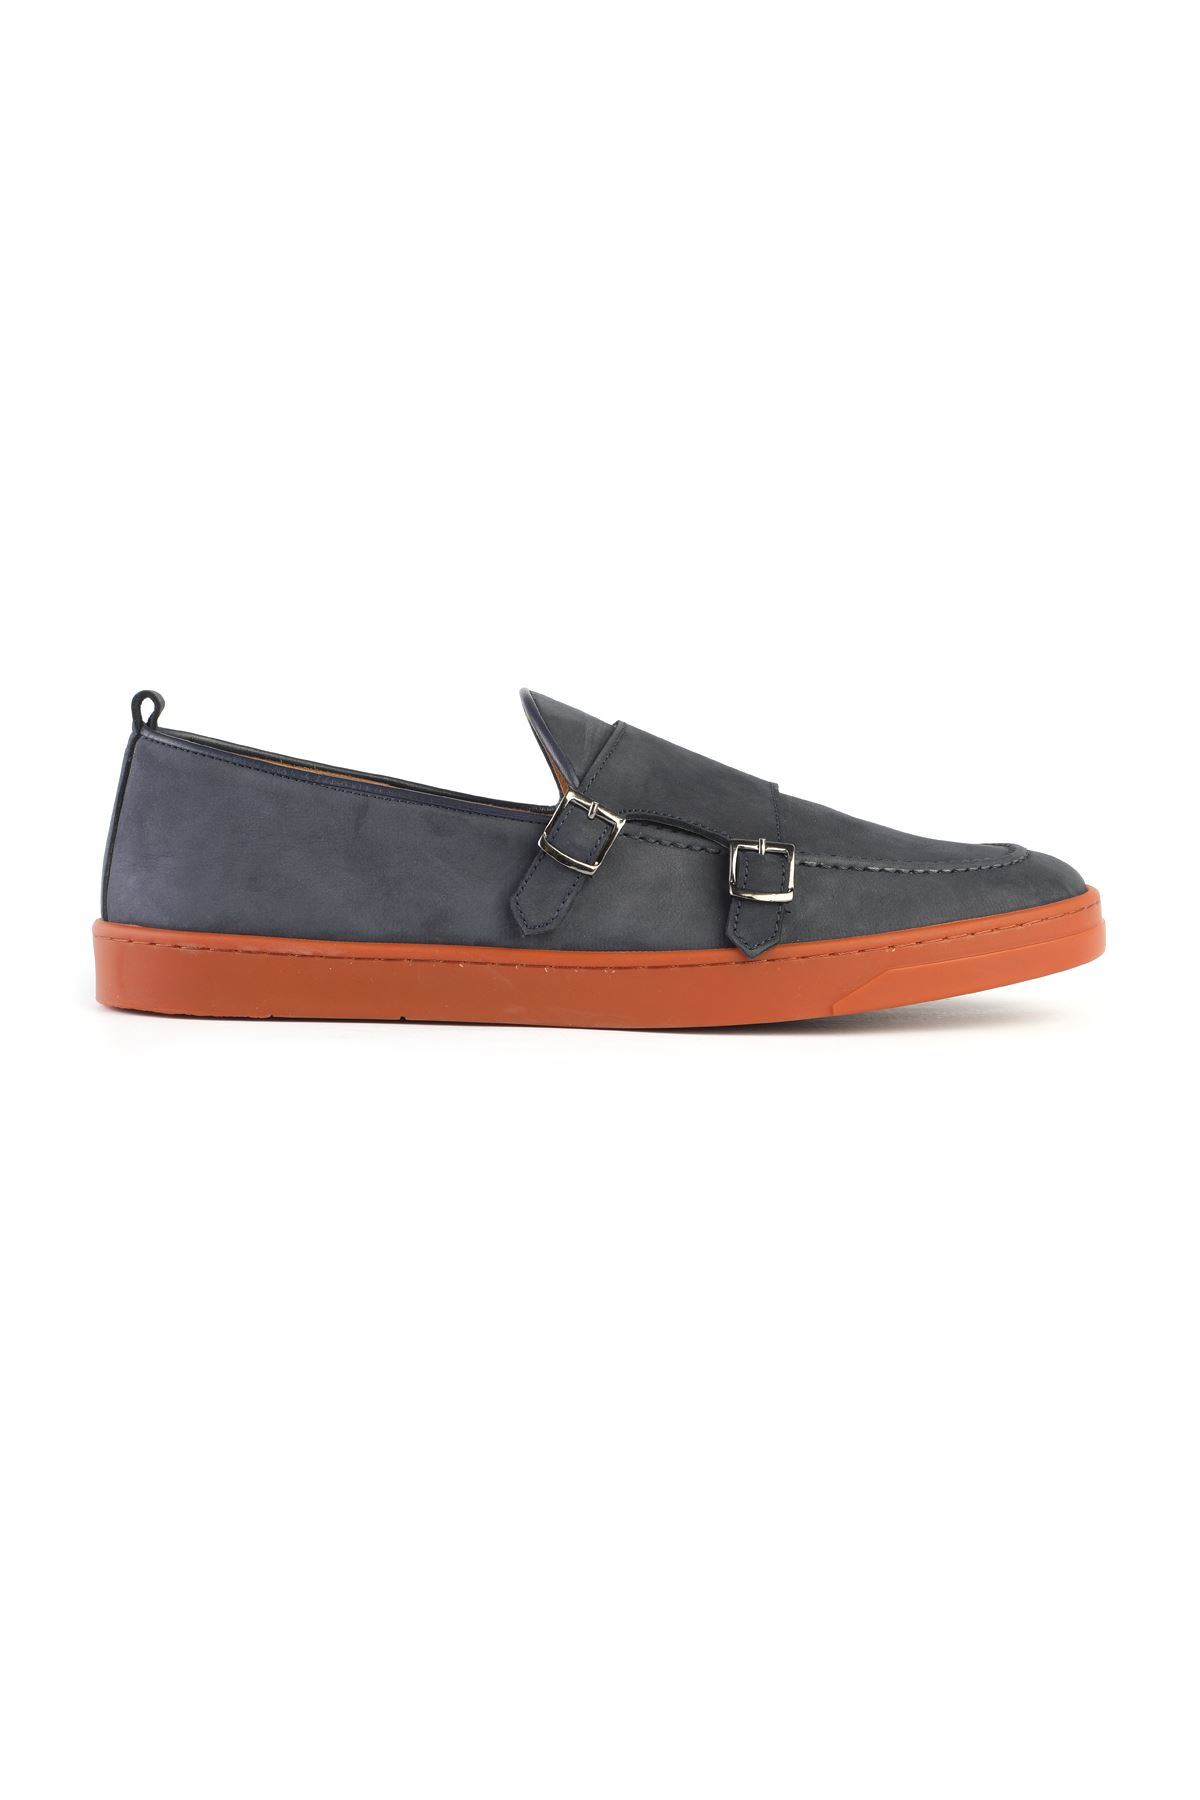 Libero L3357 Navy Blue Loafer Shoes